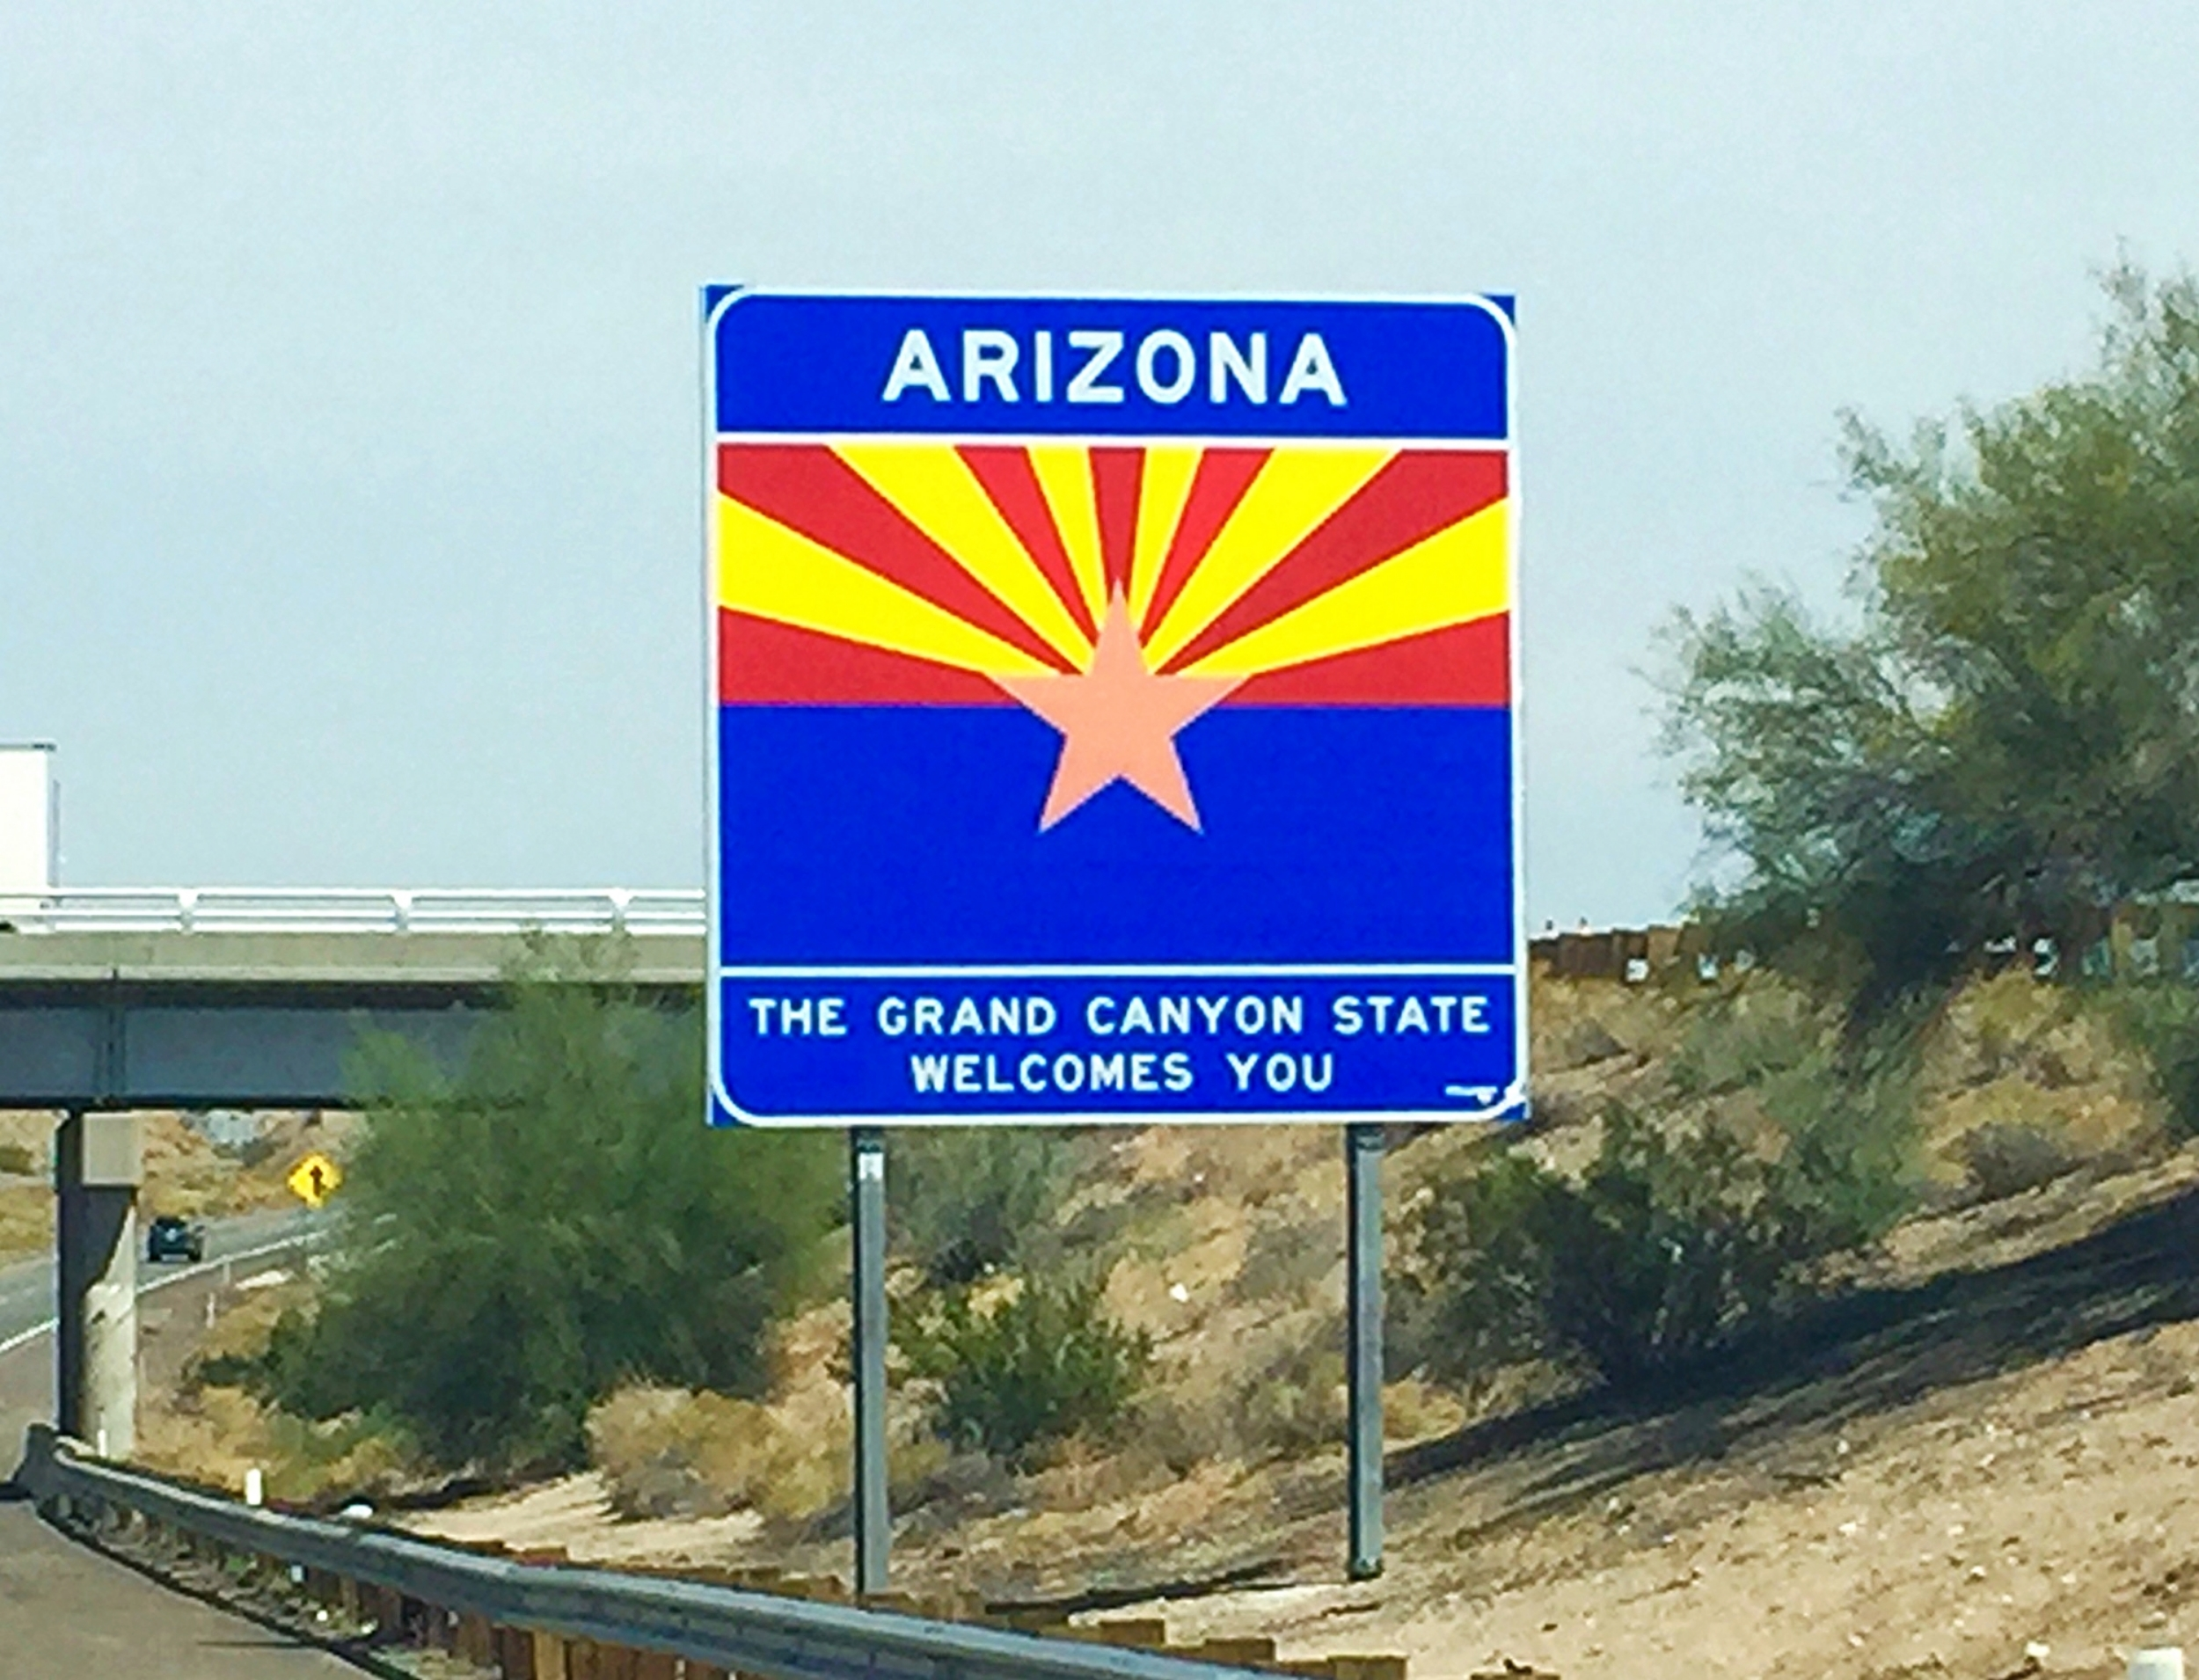 Crossing the Arizona border